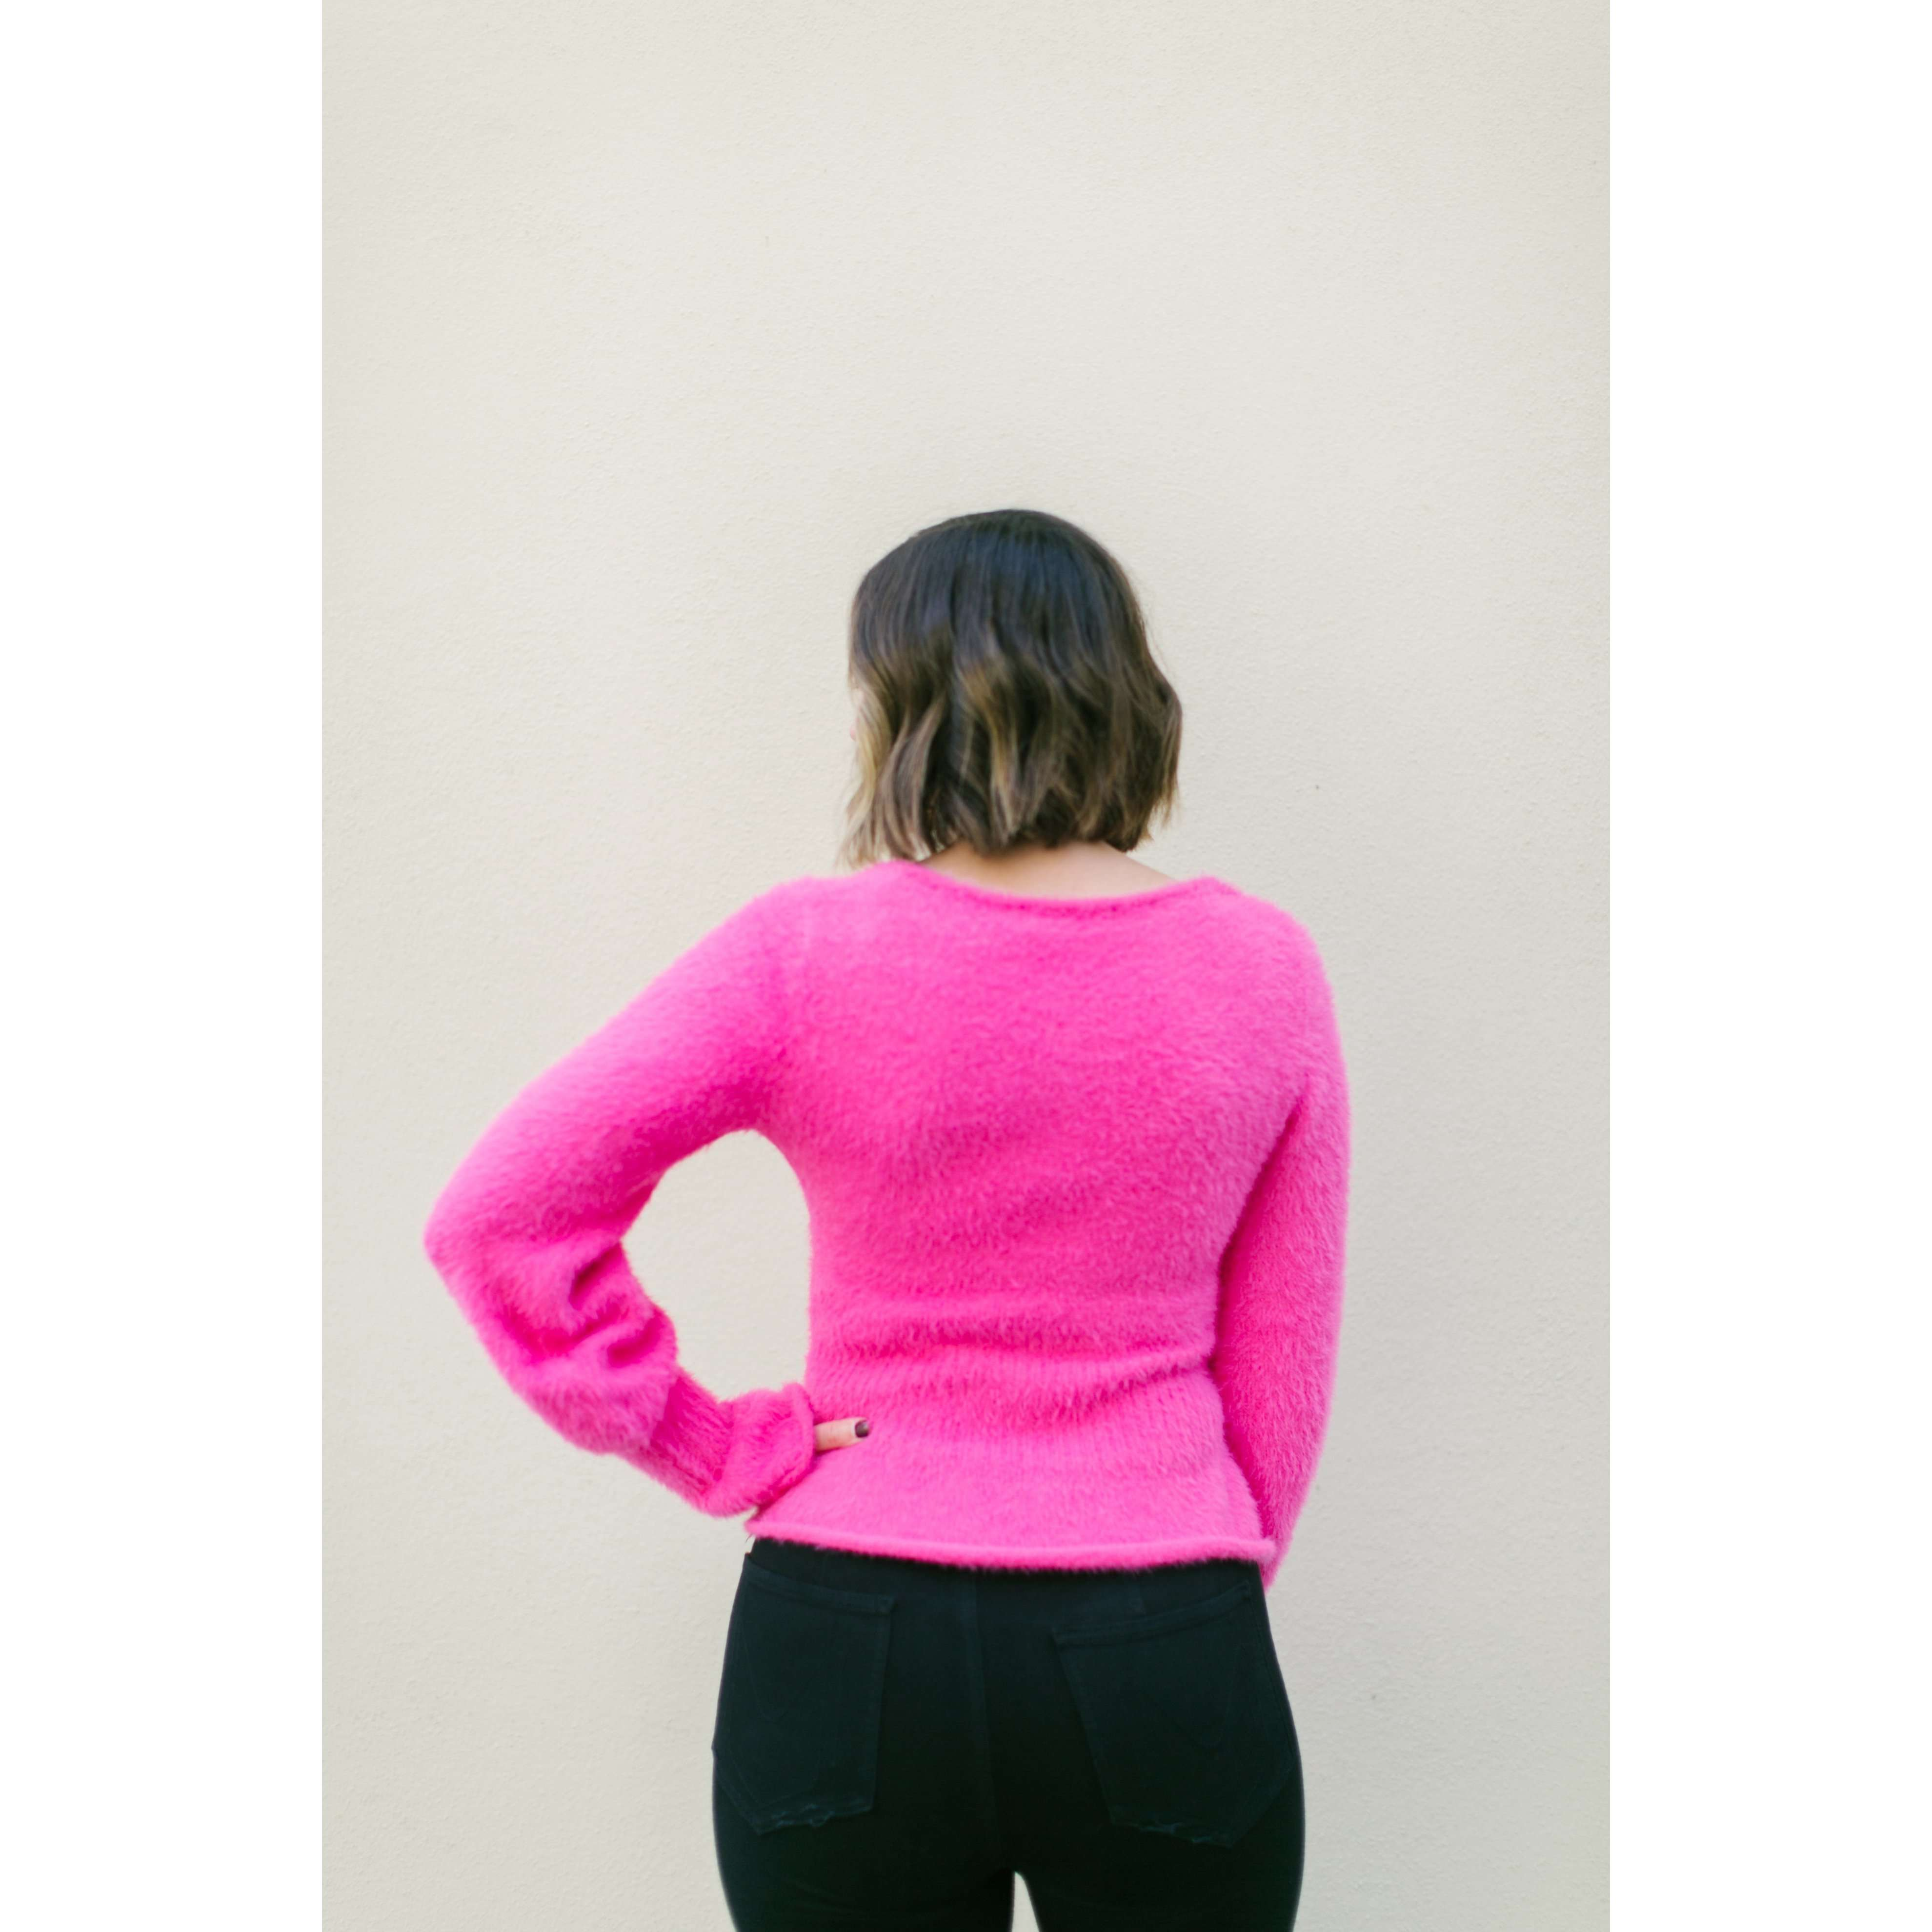 8.28 Boutique:8.28 Boutique,DO + BE Ruffled Hem and Flared Sleeve Hot Pink Sweater,Tops